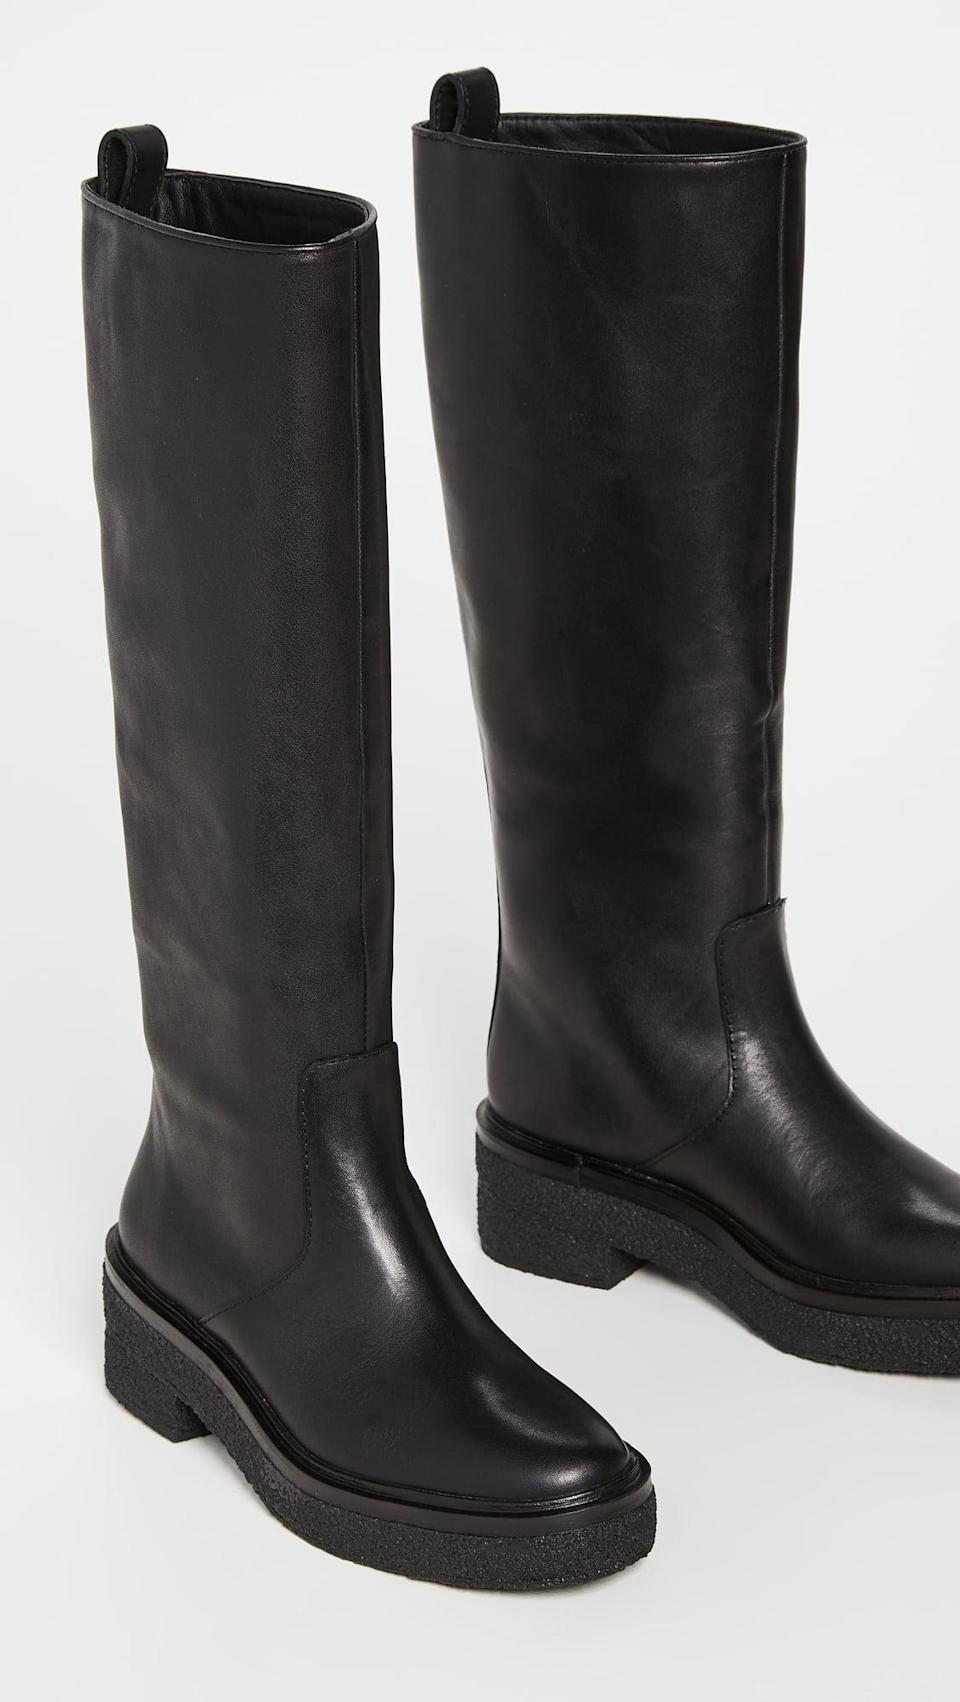 <p>These <span>Loeffler Randall Tall Shaft Boots with Crepe Sole</span> ($595) are elegant and timeless. Take care of them properly, and they'll never let you down.</p>